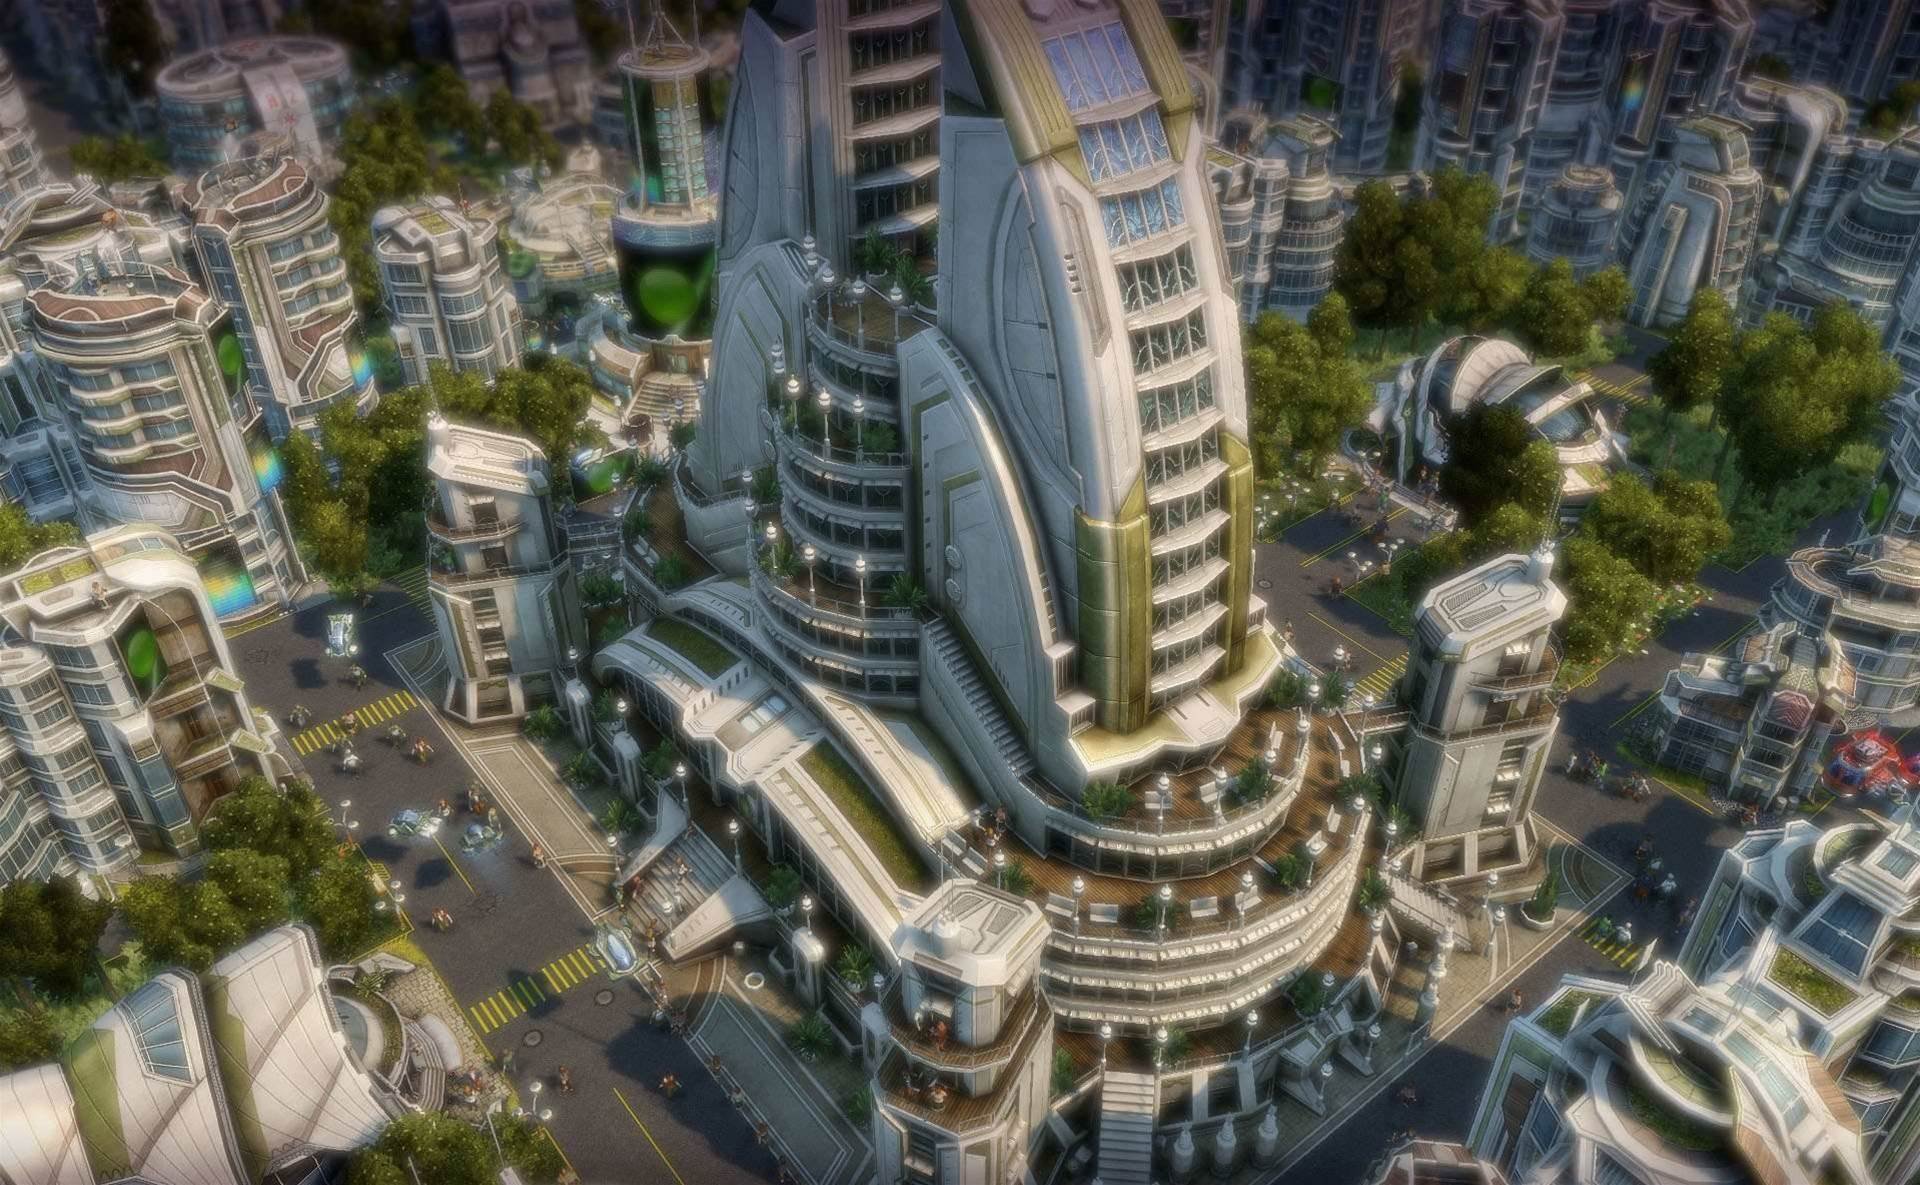 New Anno 2070 DLC packed with irony